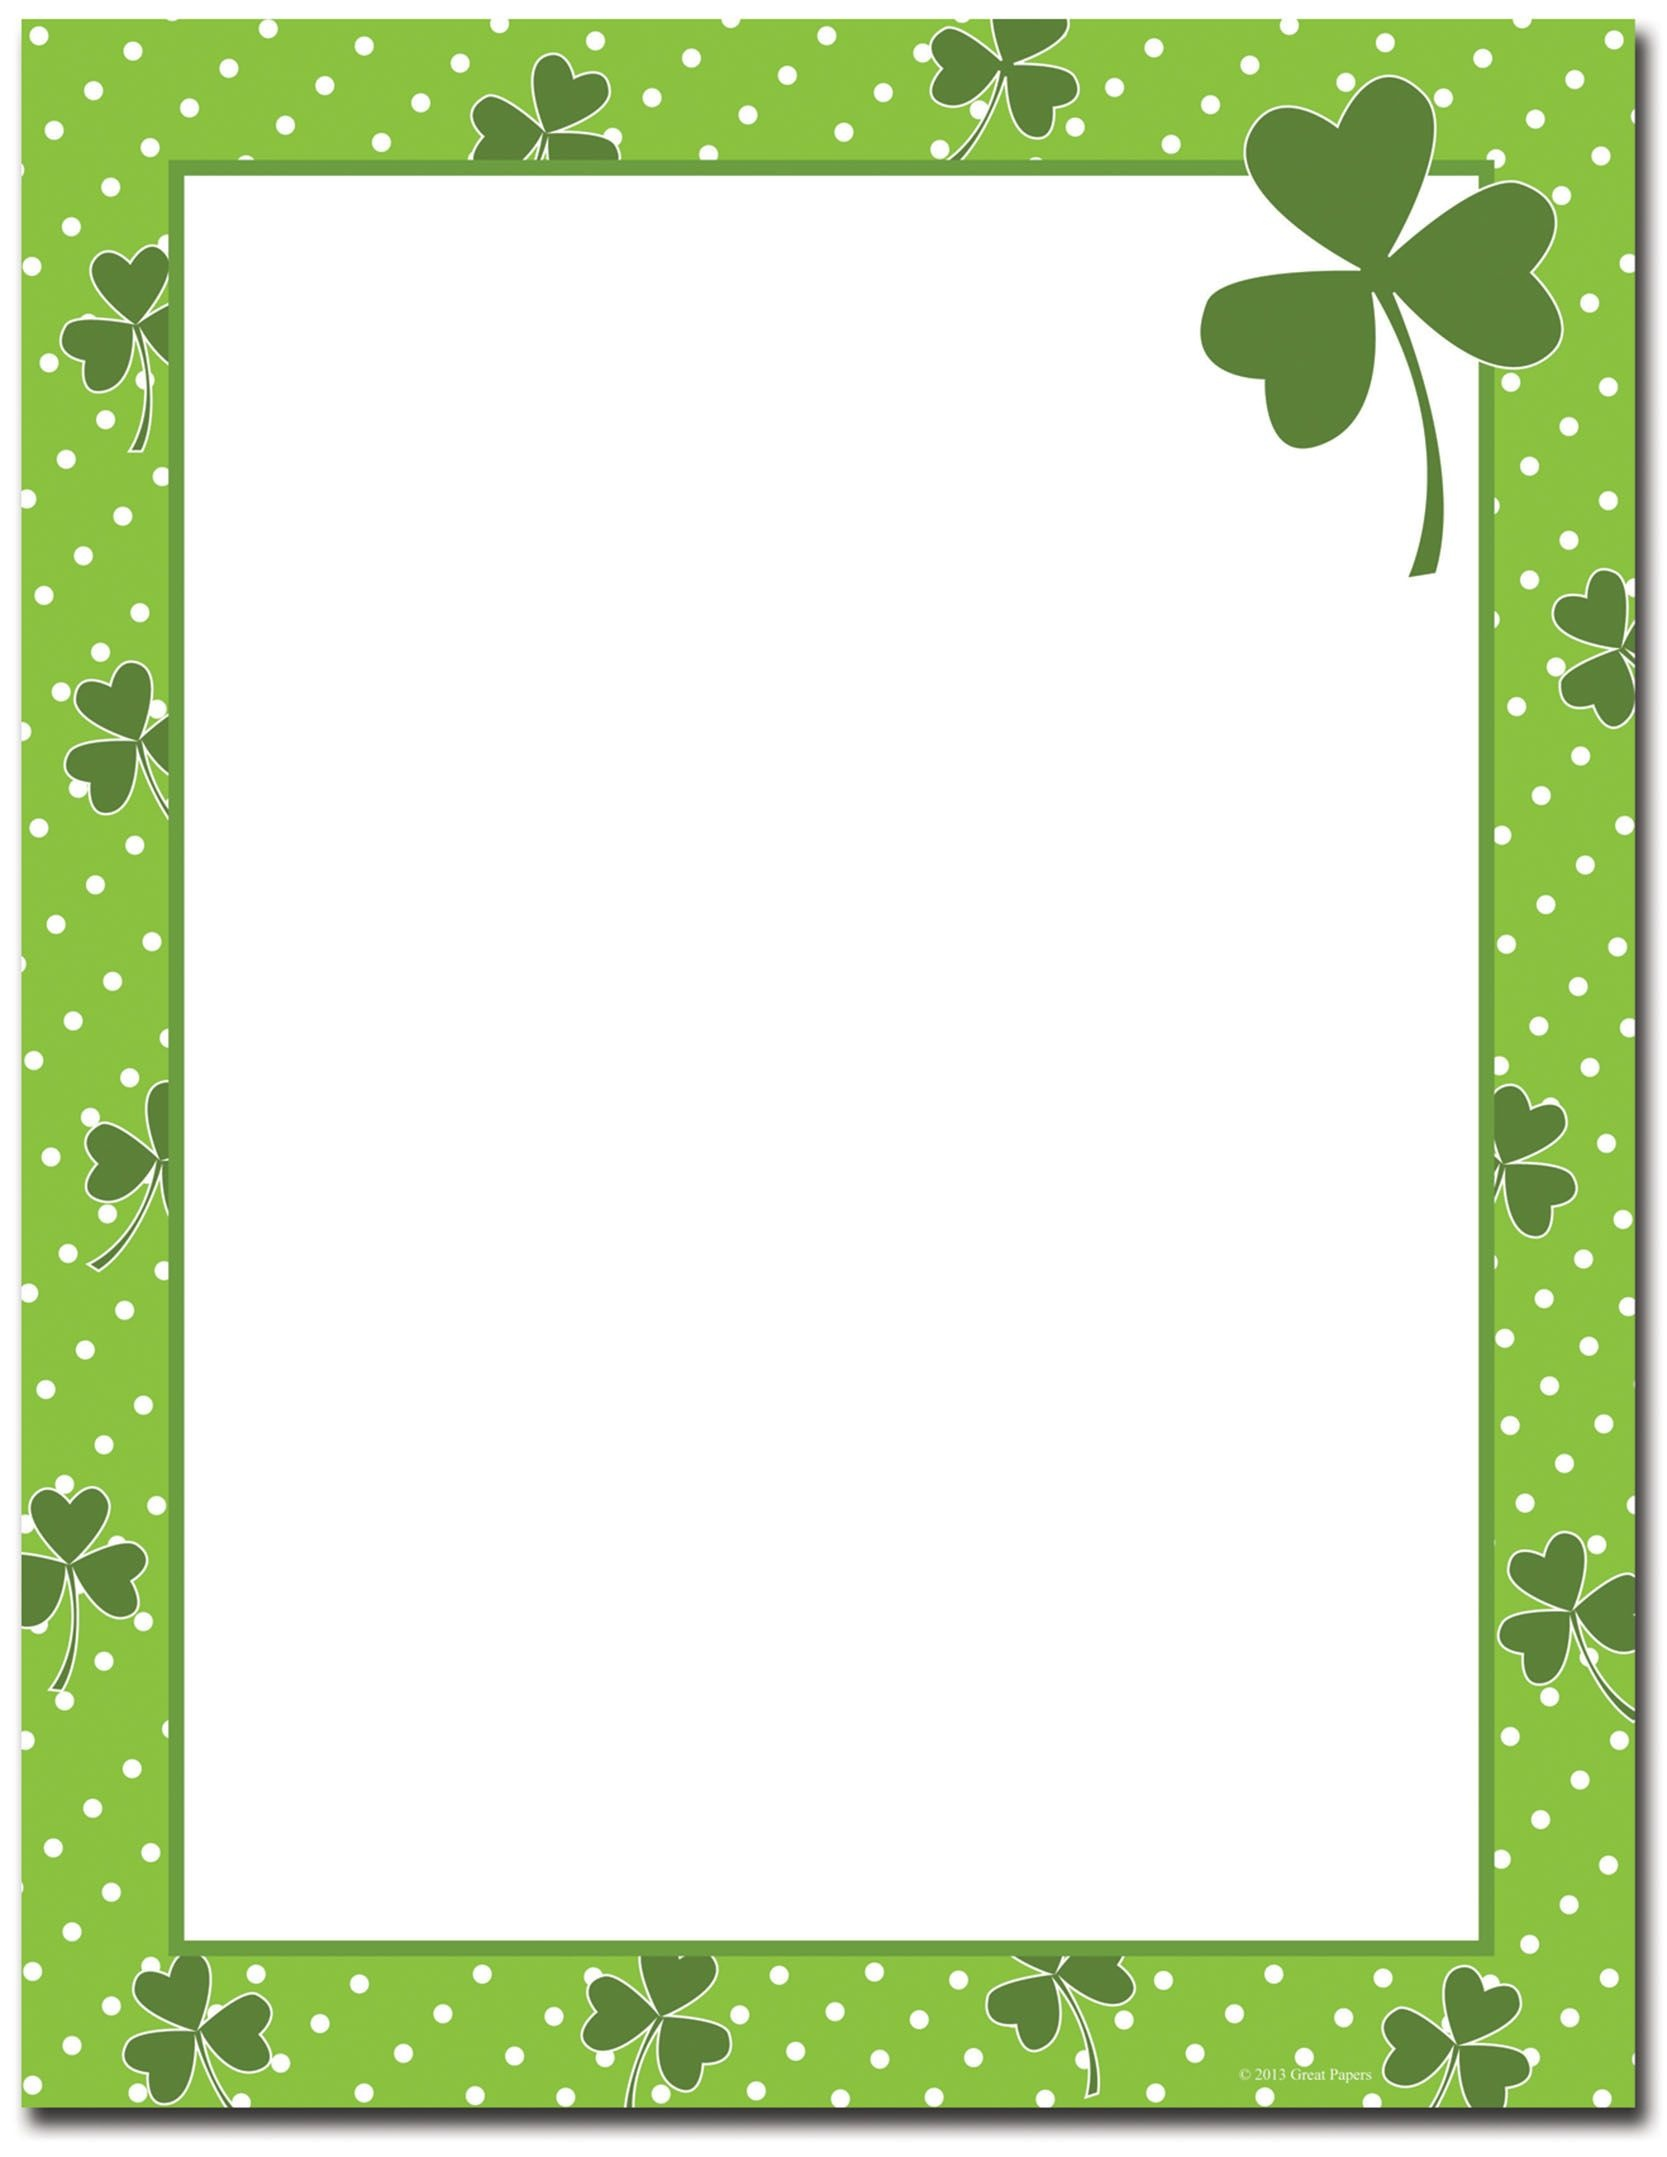 St Patrick's Day Stationery | Four Leaf Clover Letterhead | St - Free Printable St Patricks Day Stationery